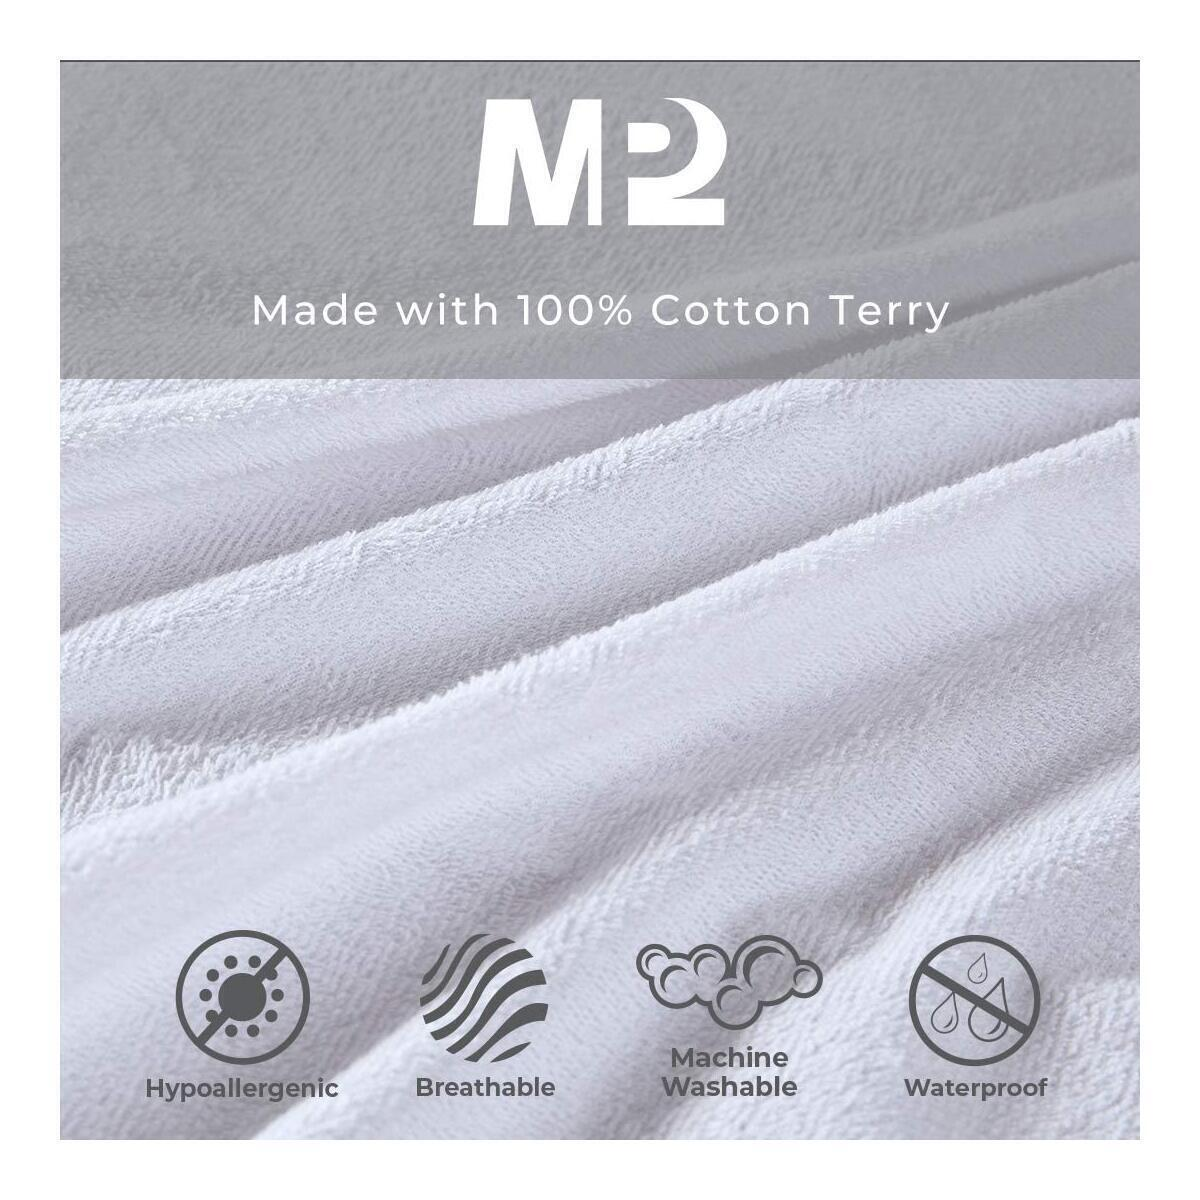 Waterproof Mattress Cover Moving Protector King Size, Breathable Cooling Cotton Terry Bed Mattress Deep Pocket - Fits 4